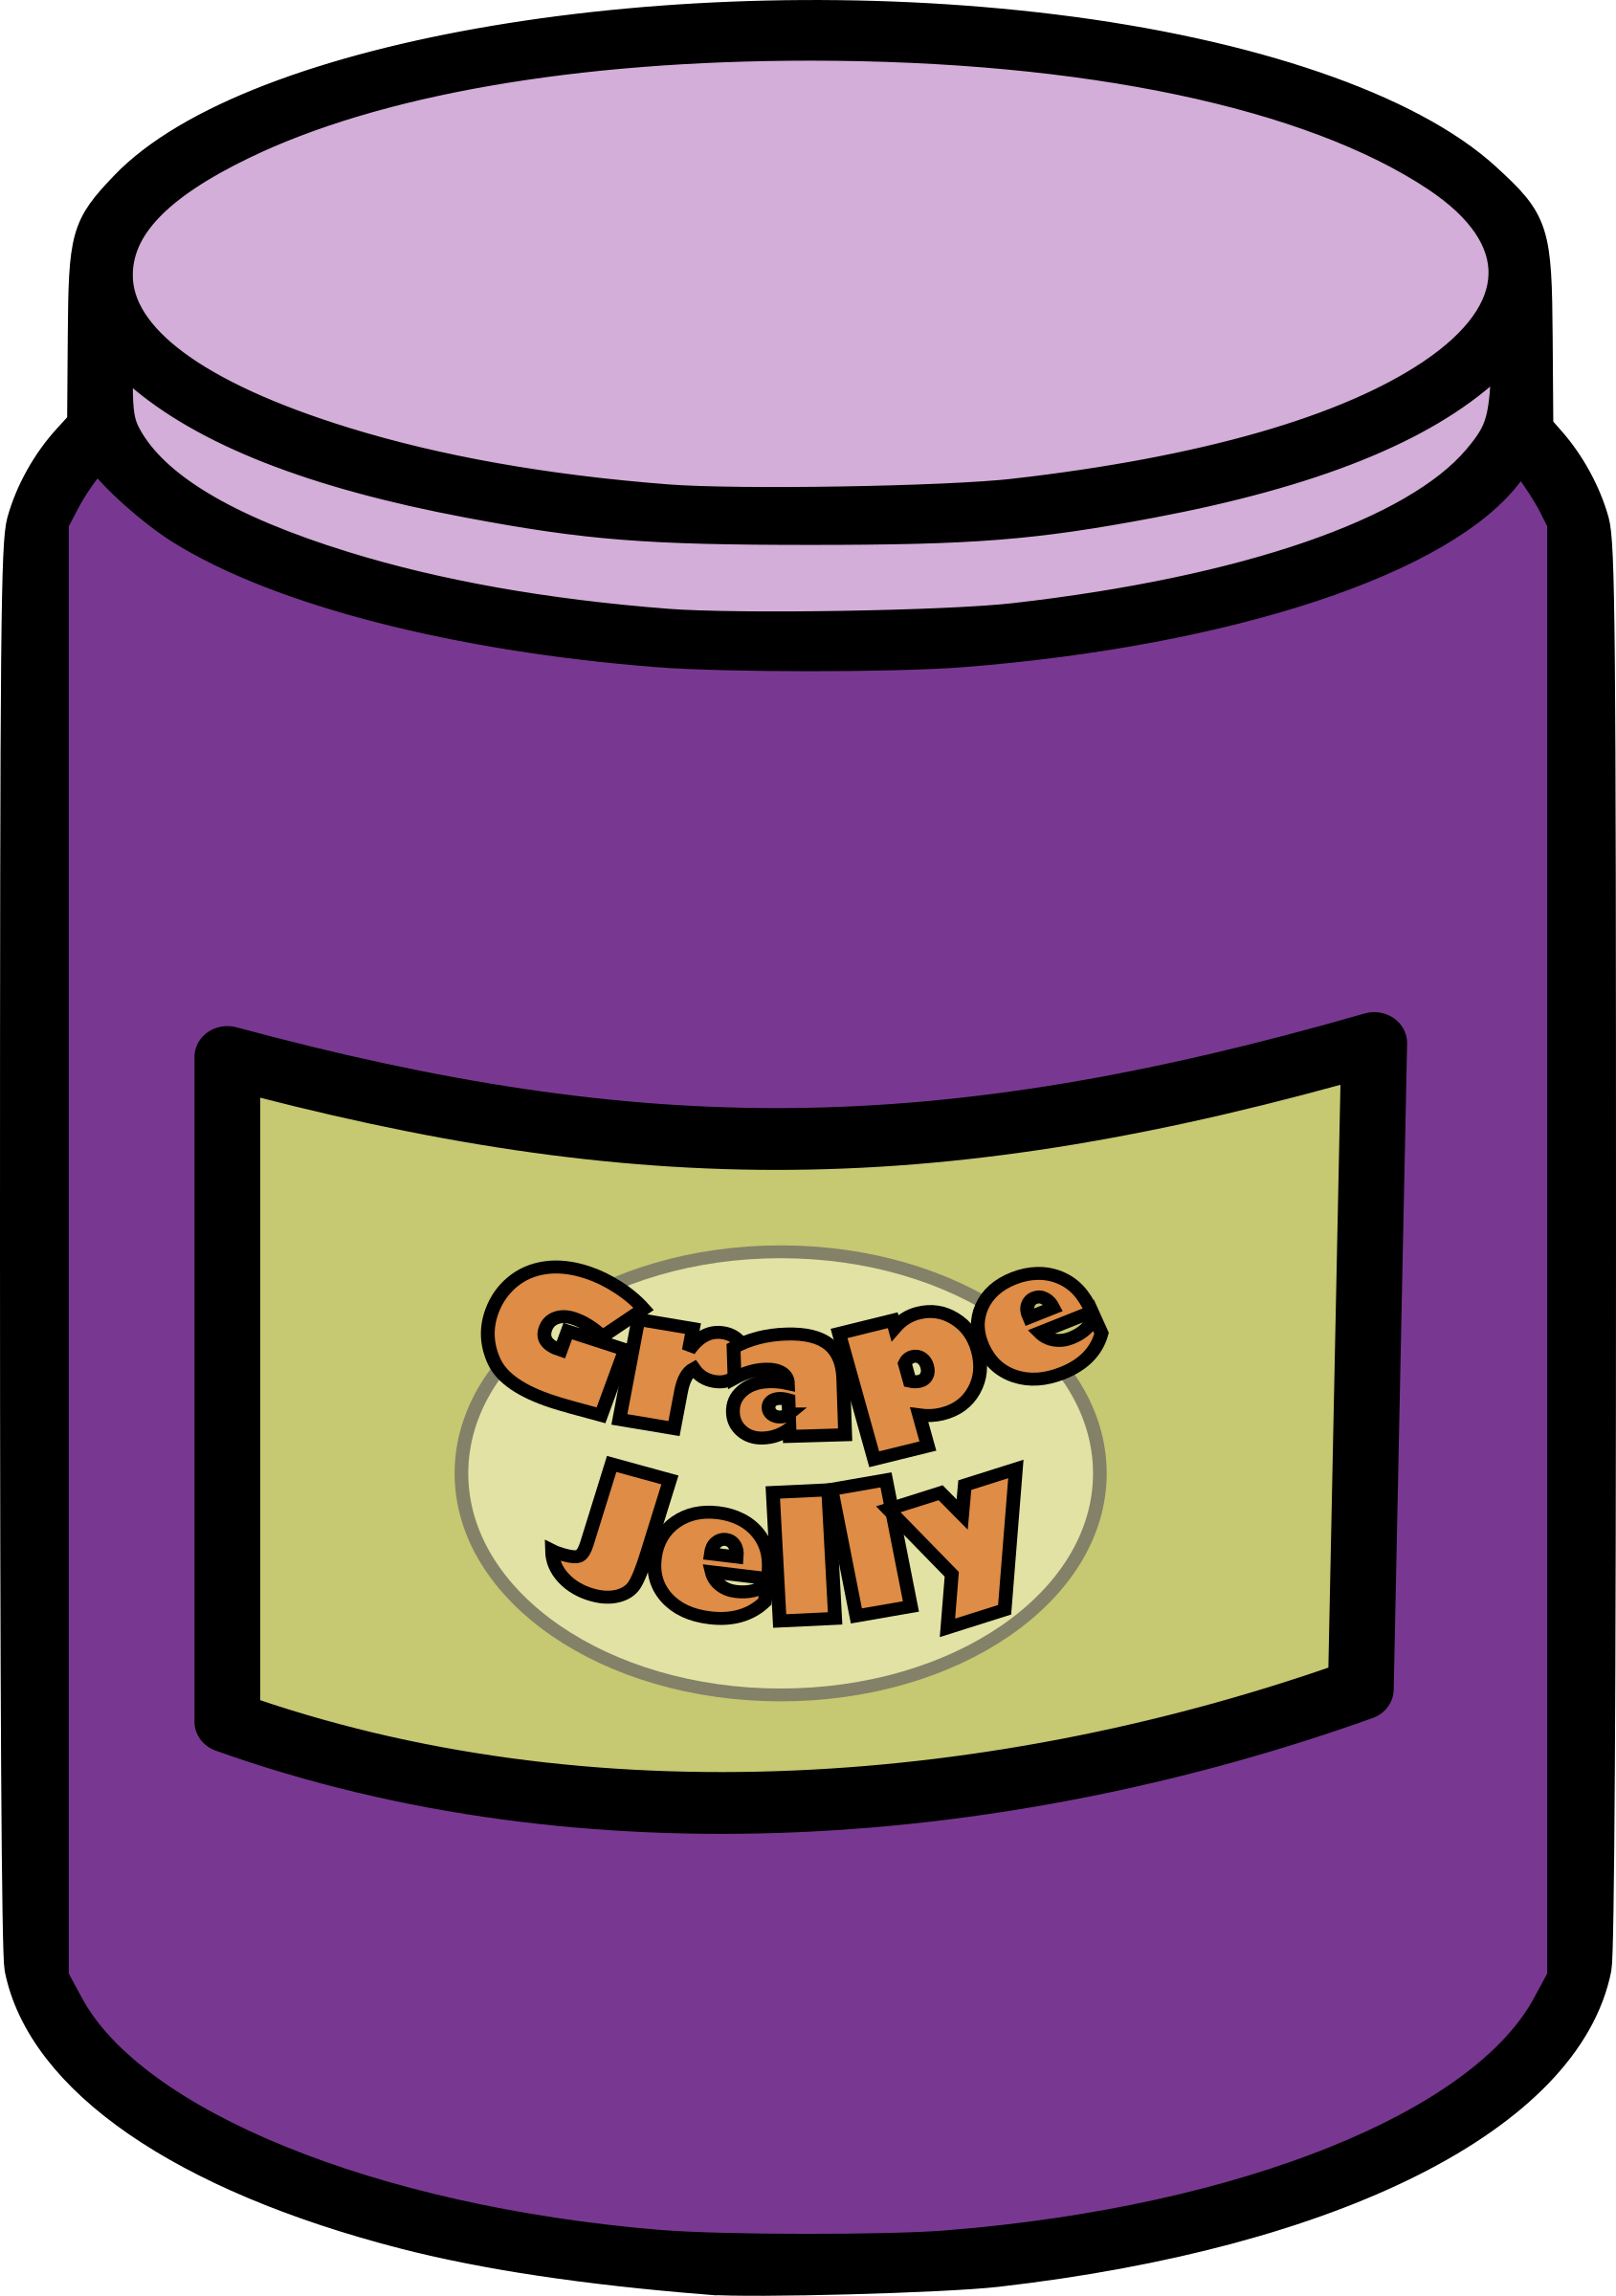 Free Jelly Clipart grape jelly, Download Free Clip Art on Owips.com.